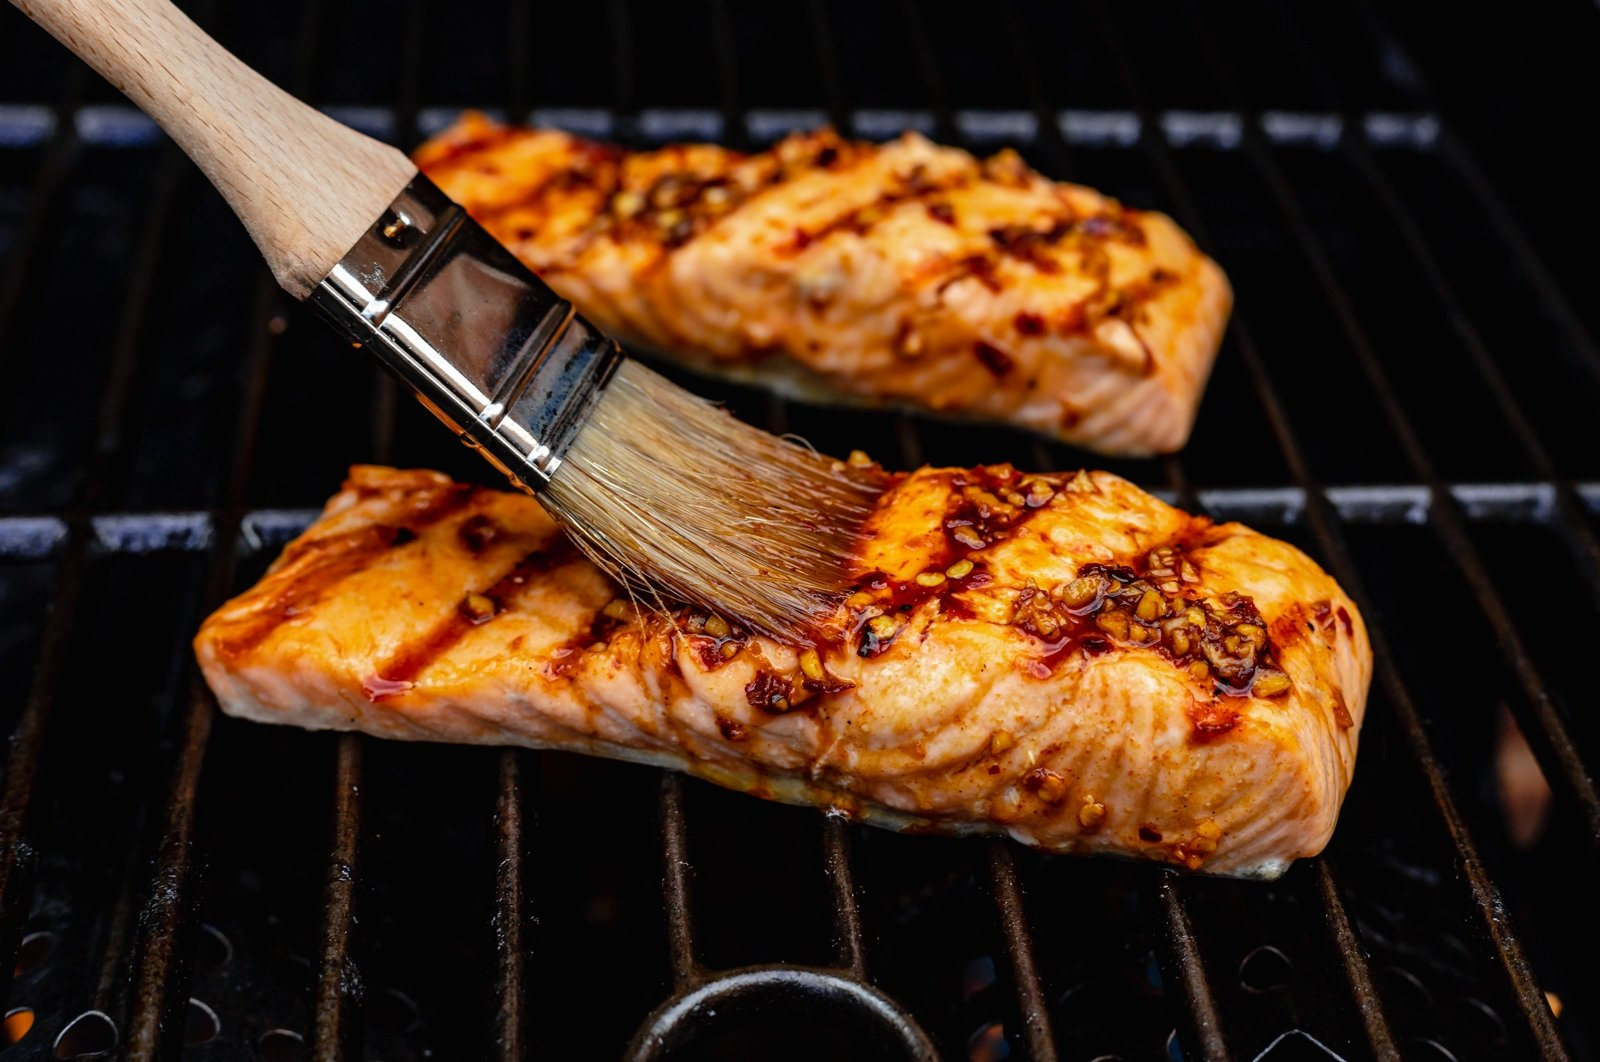 brushing salmon with a marinade on a grill